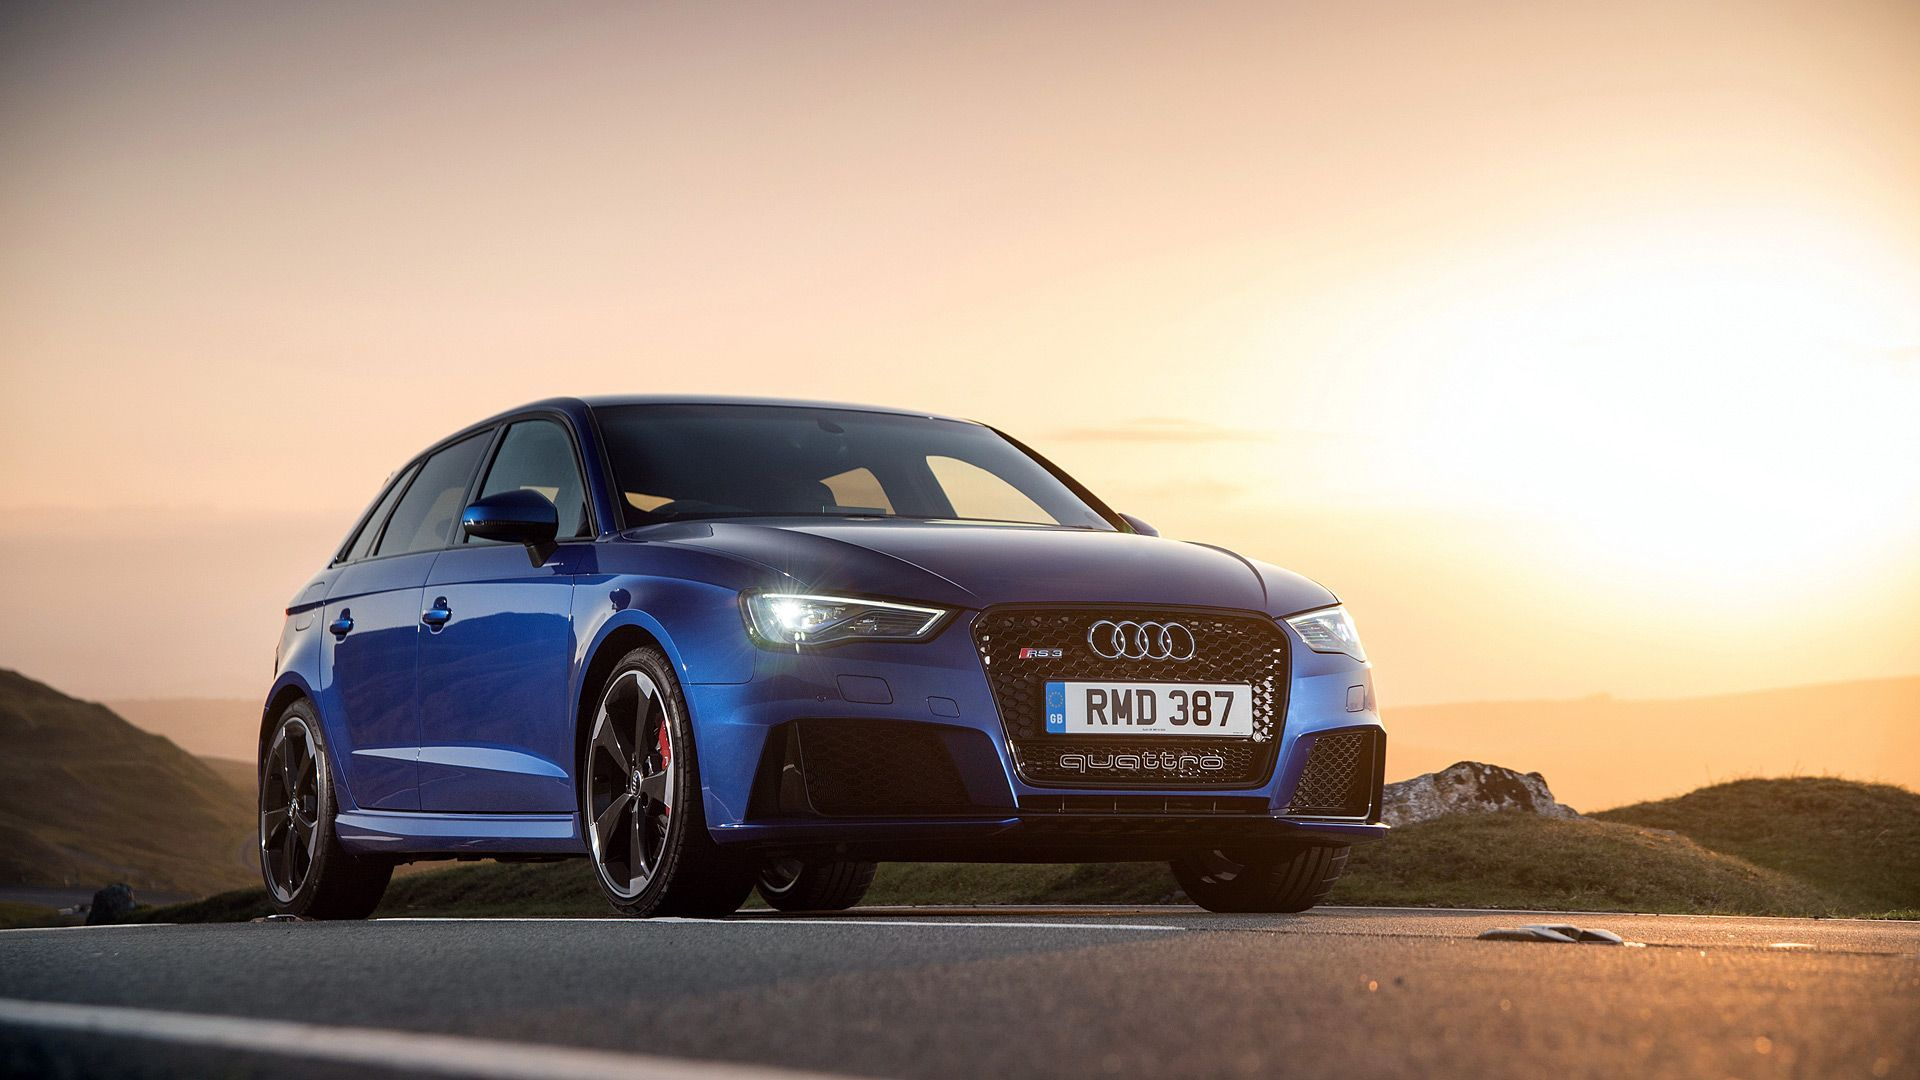 Audi Rs3 Wallpapers Top Free Audi Rs3 Backgrounds Wallpaperaccess